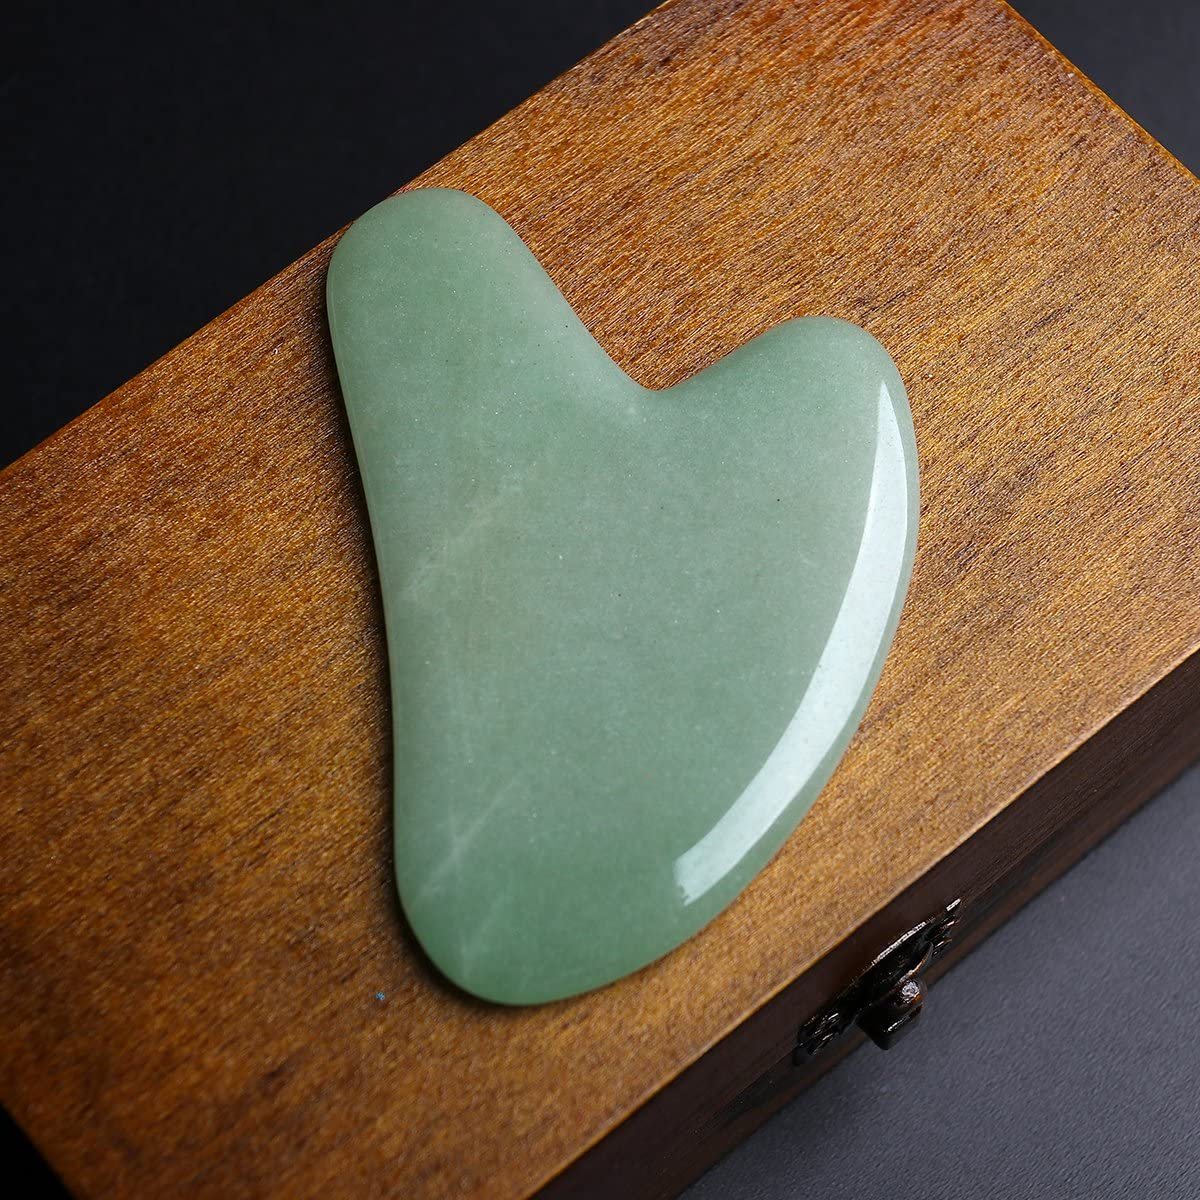 Gua Sha Scraping Massage Tools, Natural Stone Guasha Board for SPA Acupuncture Therapy